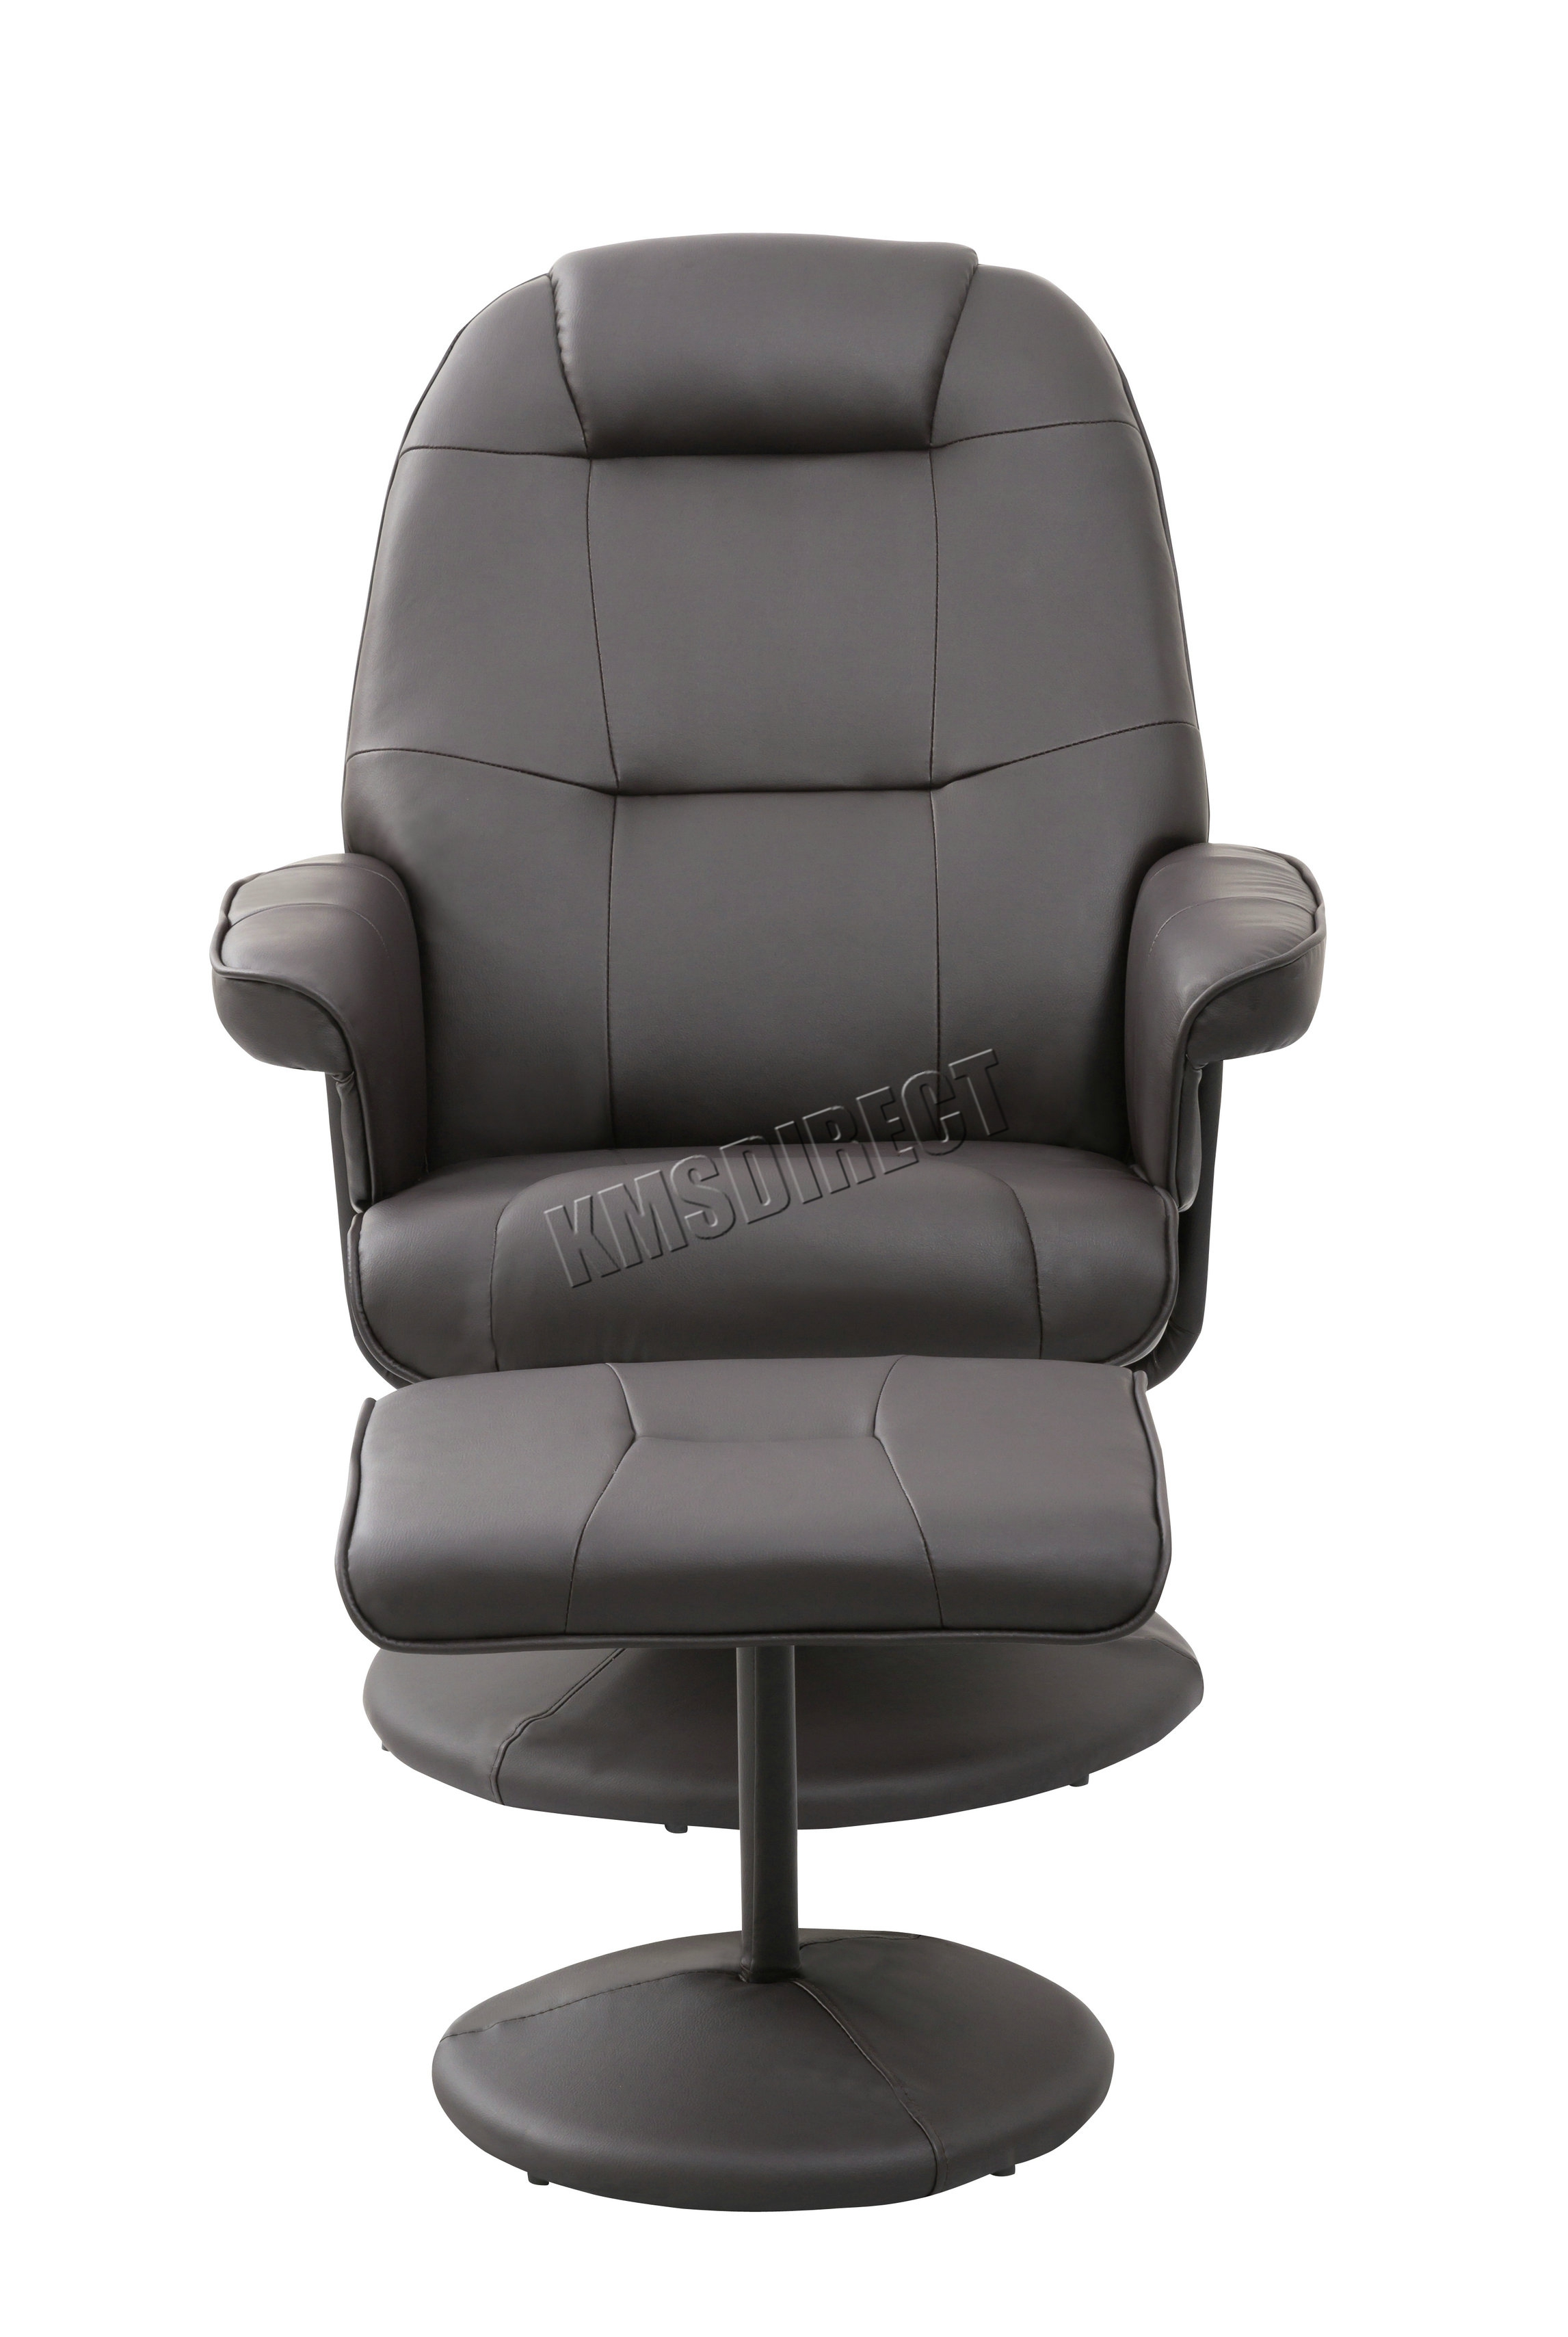 FoxHunter Executive Recliner PU Arm Chair Swivel Lounger Seat Foot